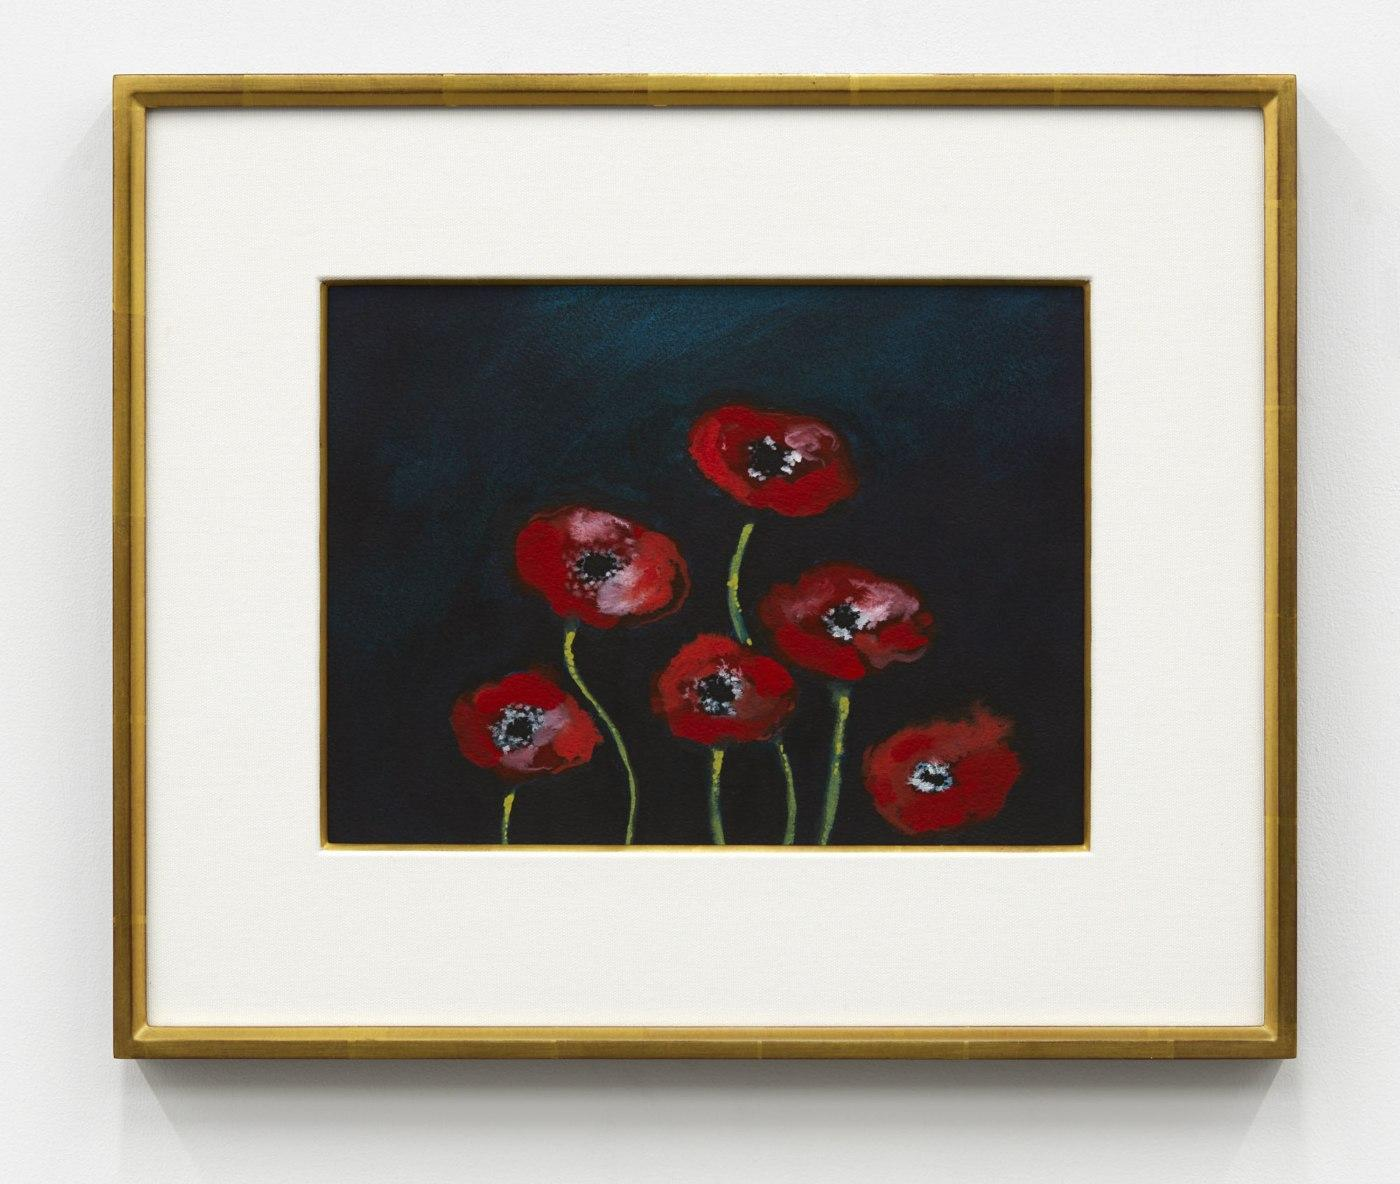 Nicolas Party, /Poppies/, 2020, watercolor on paper, 22.9 × 30.8 cm, 43 .8  × 51.8 cm (framed)